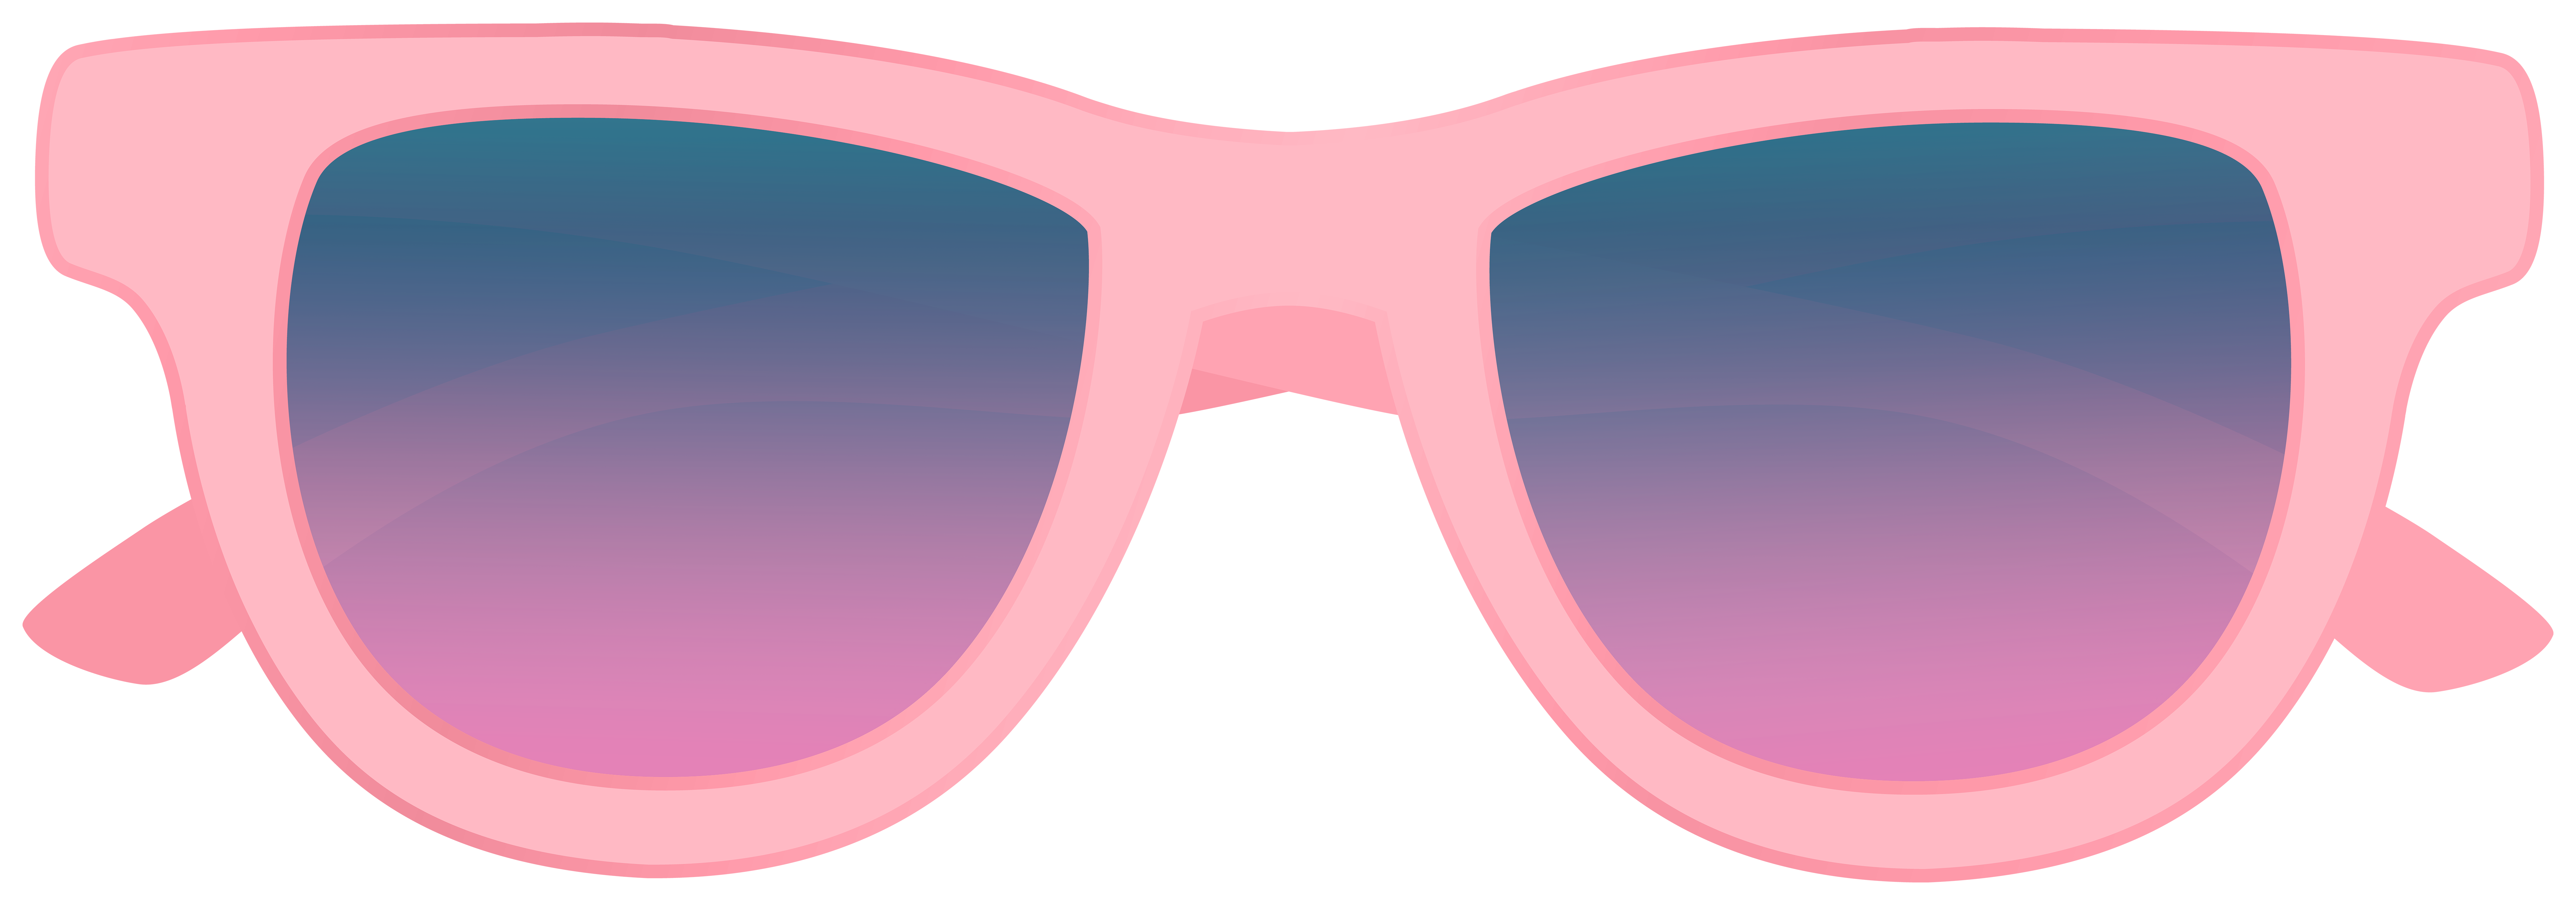 Goggles clipart pink. Sunglasses png gallery yopriceville